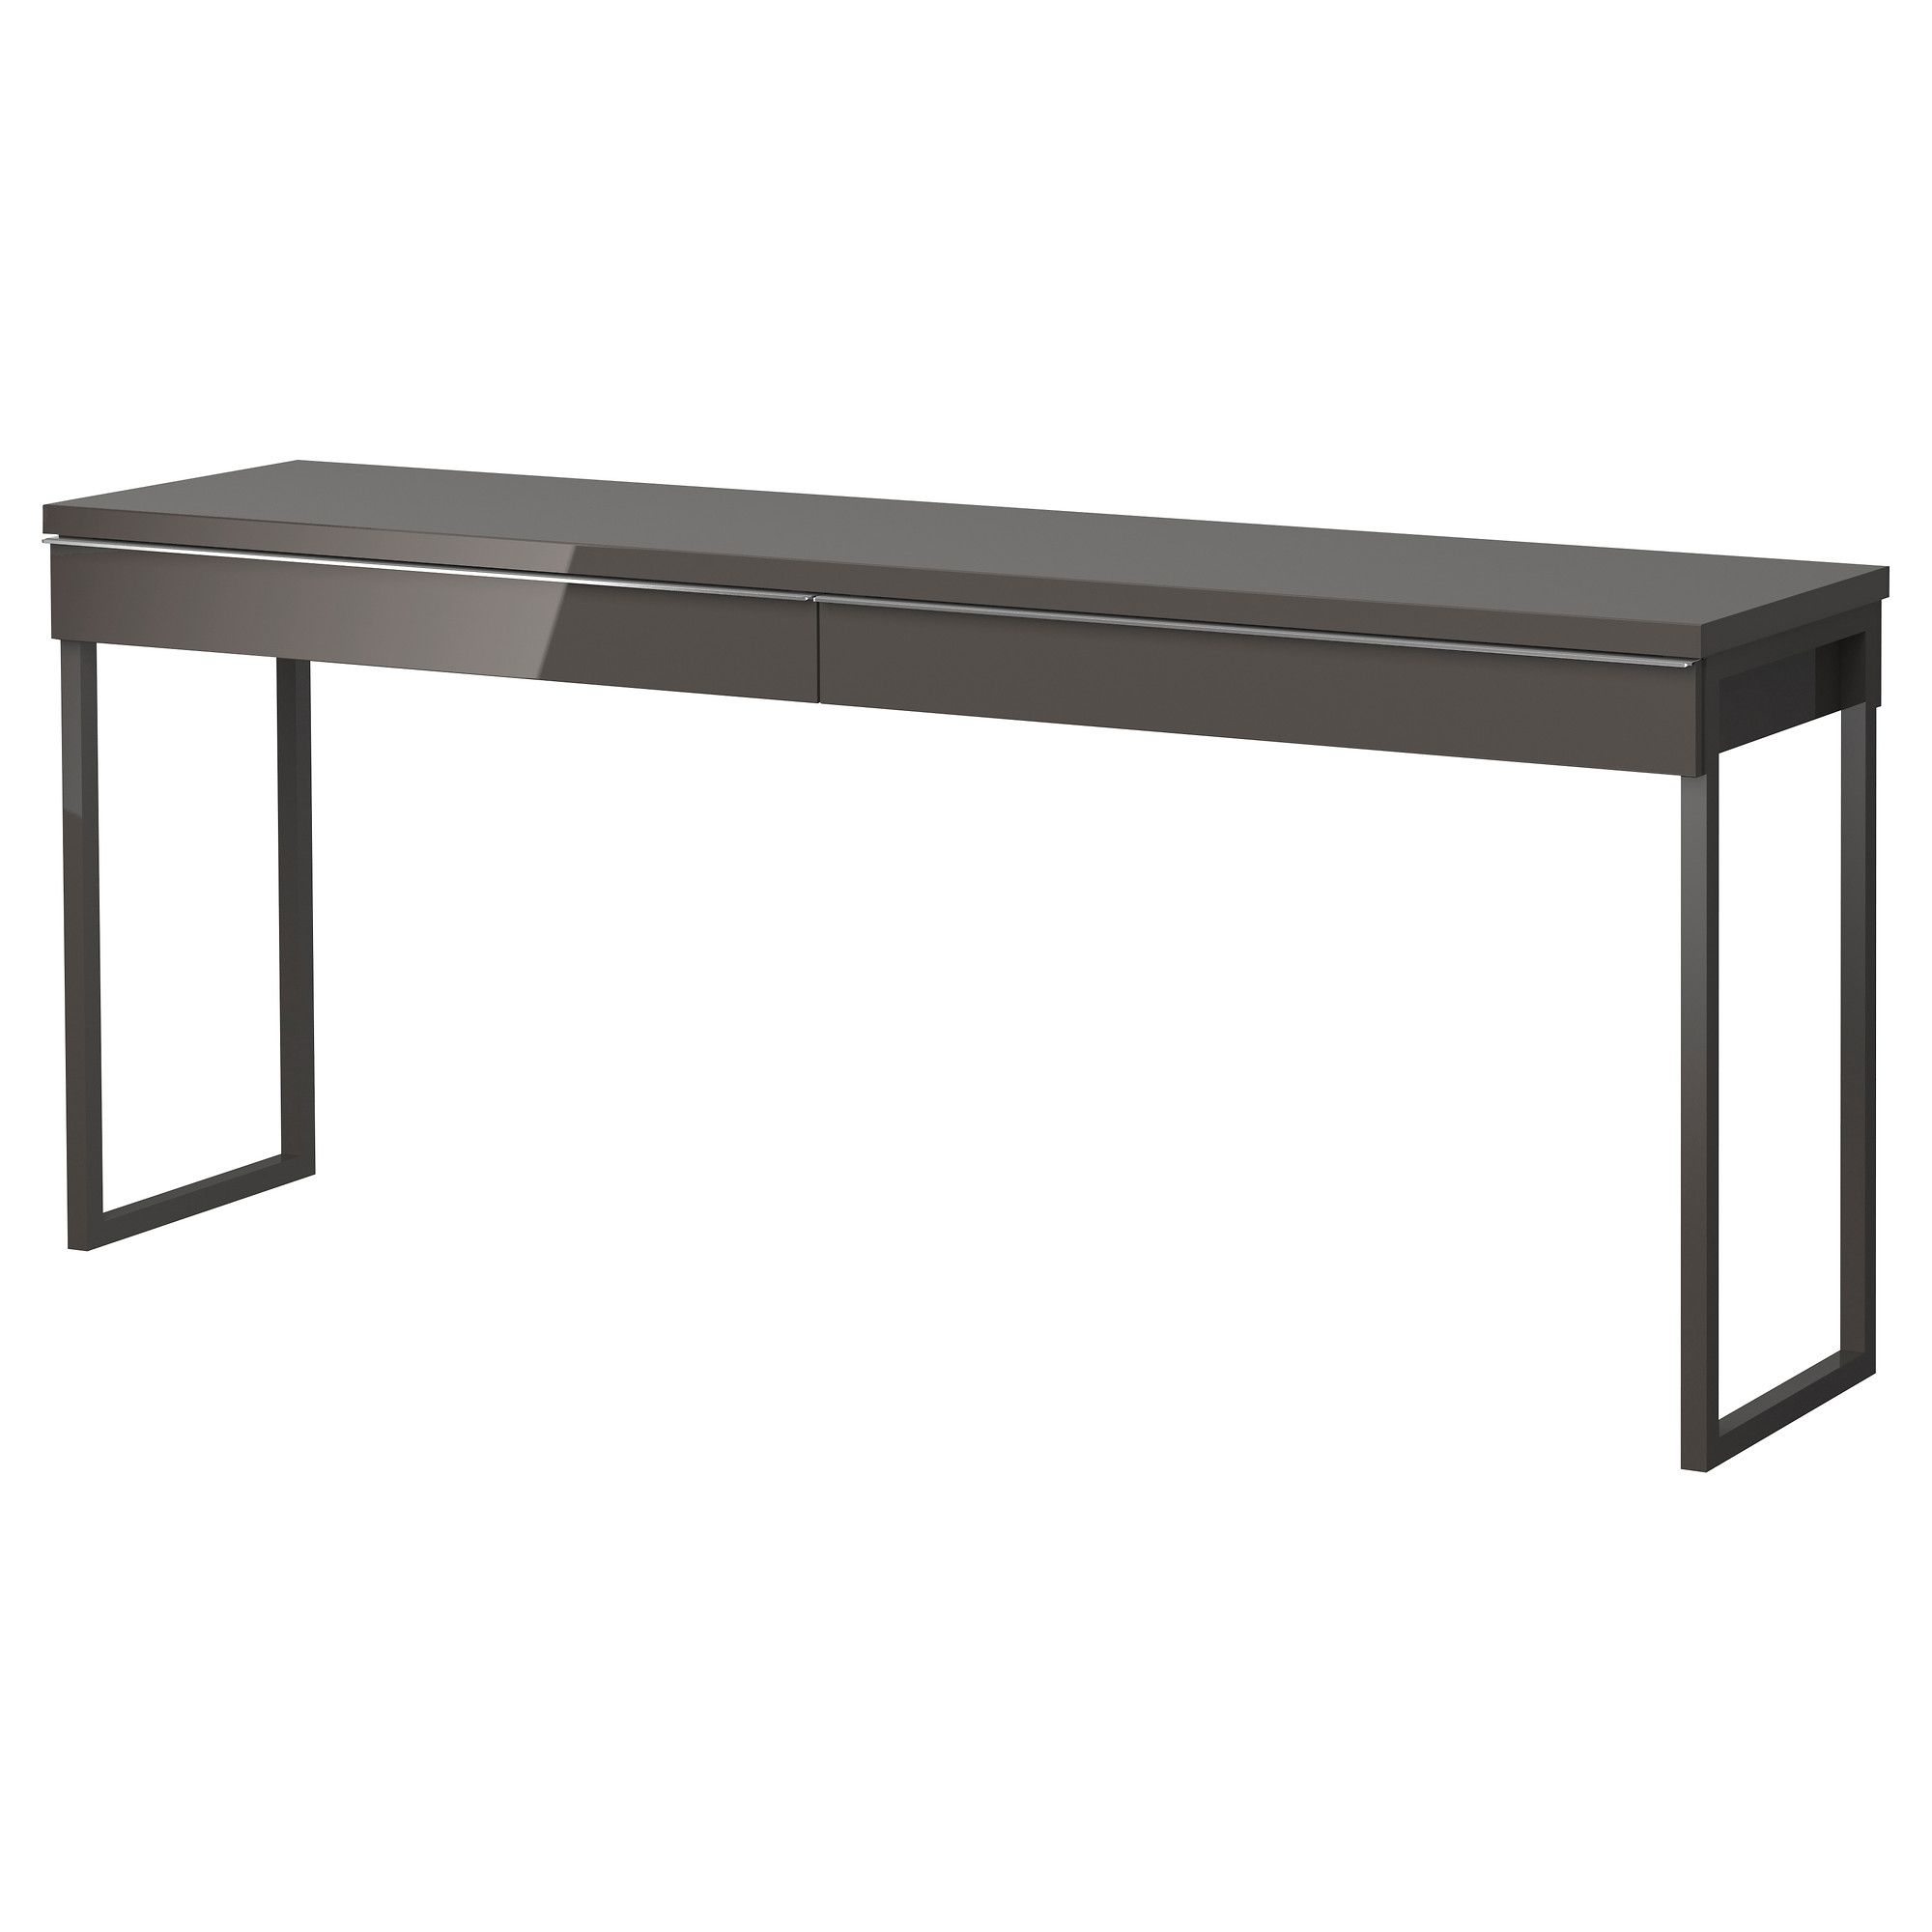 Schreibtisch ikea mikael  BESTÅ BURS Desk - high gloss gray - IKEA BESTÅ BURS Desk IKEA Two ...